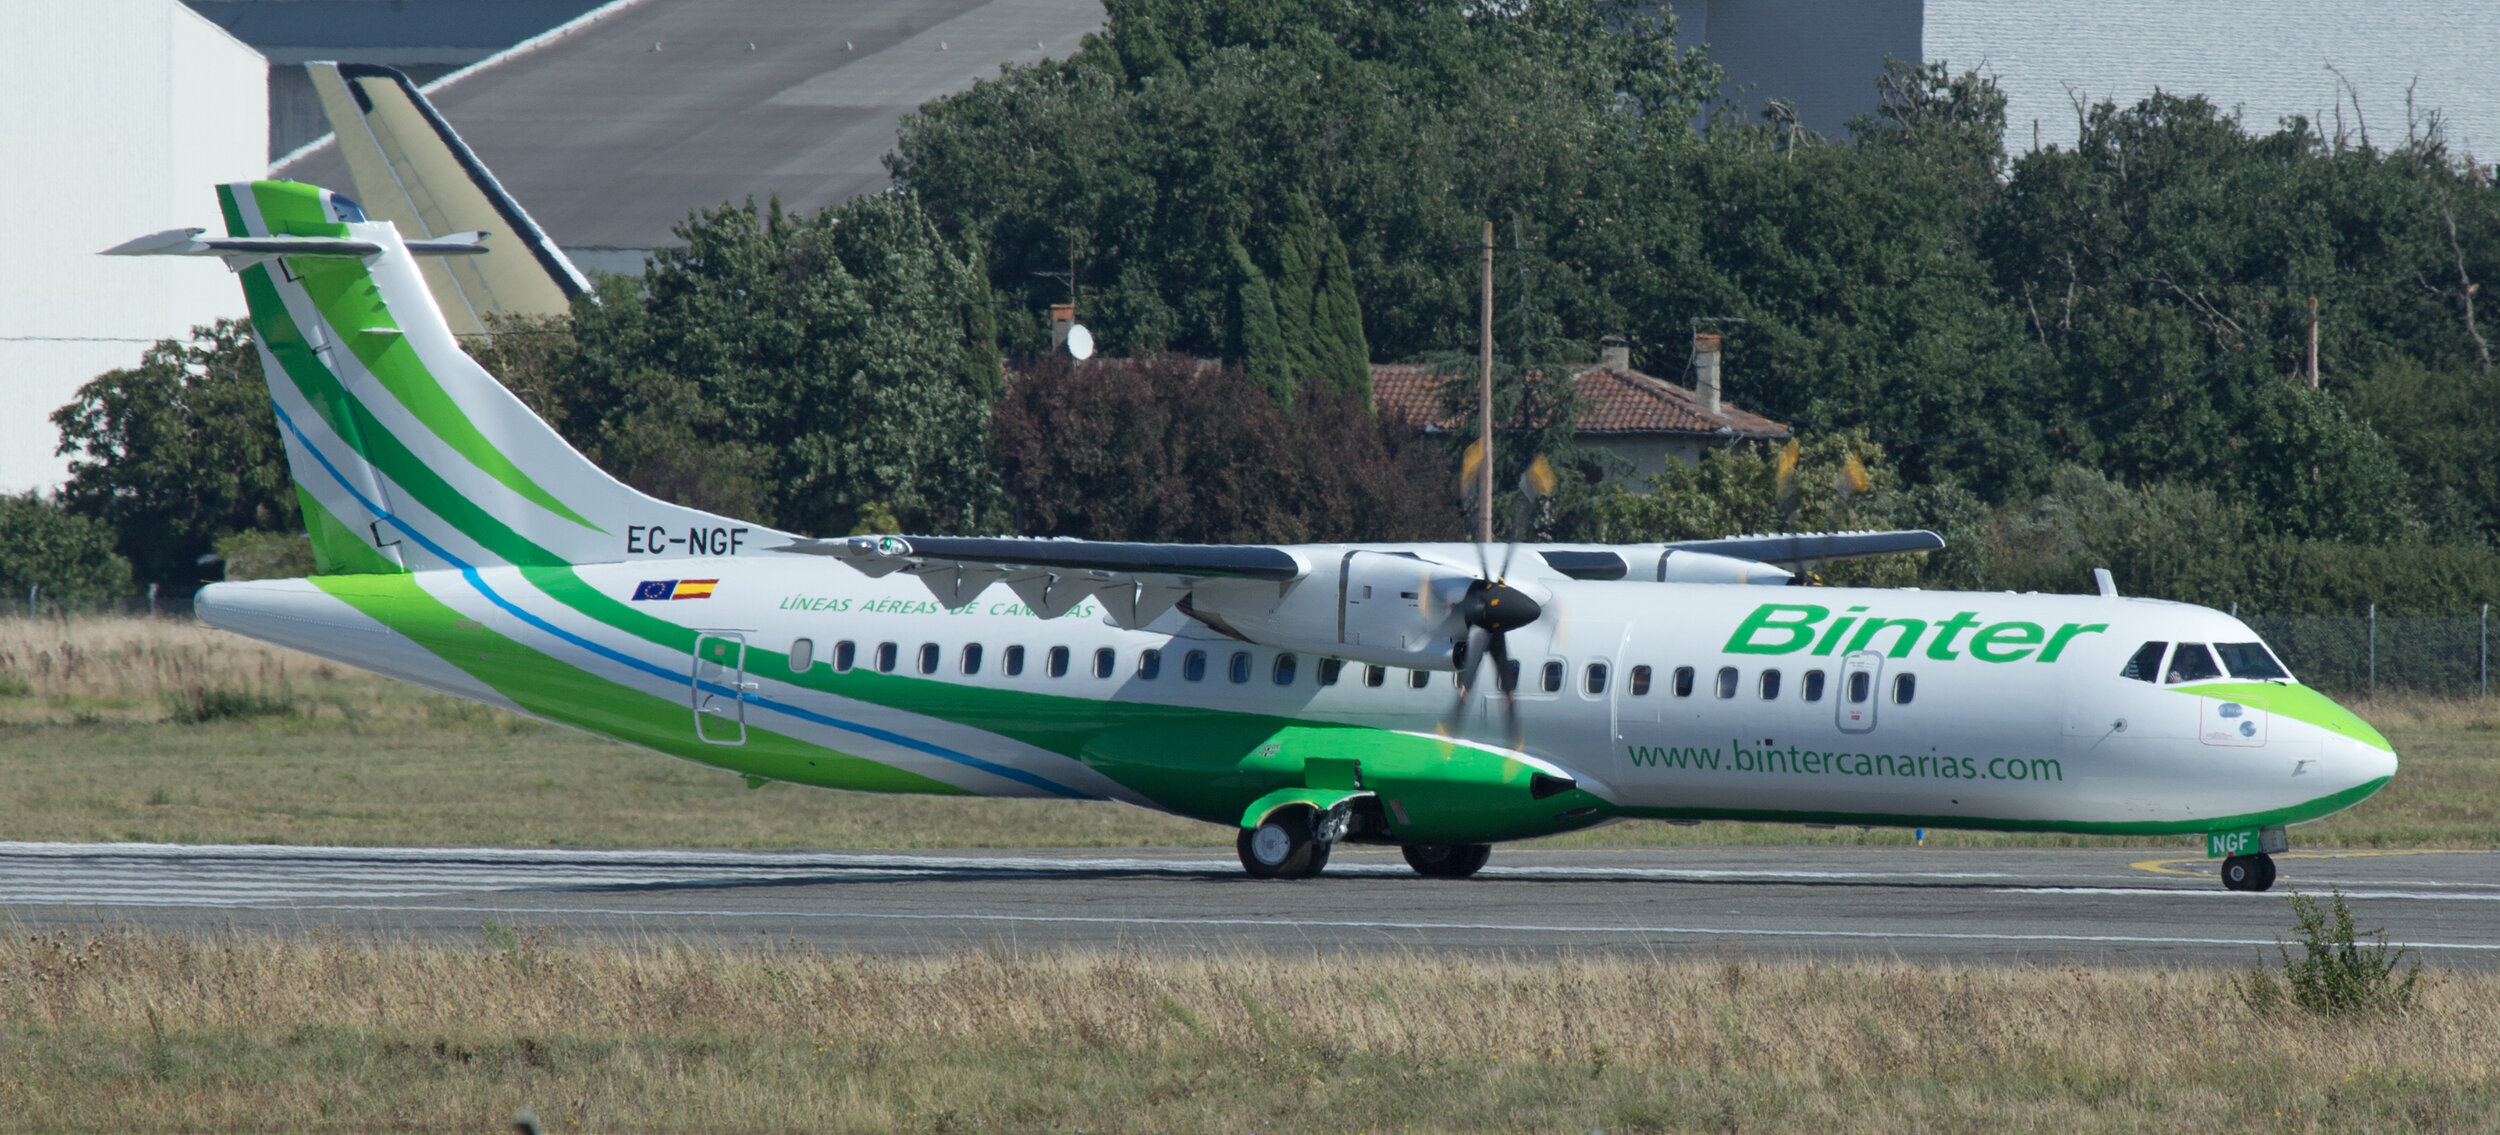 Binter ATR 72 EC-NGF undertaking pre departure checks at Toulouse 20th September 2019.Photo: Peter Hampson